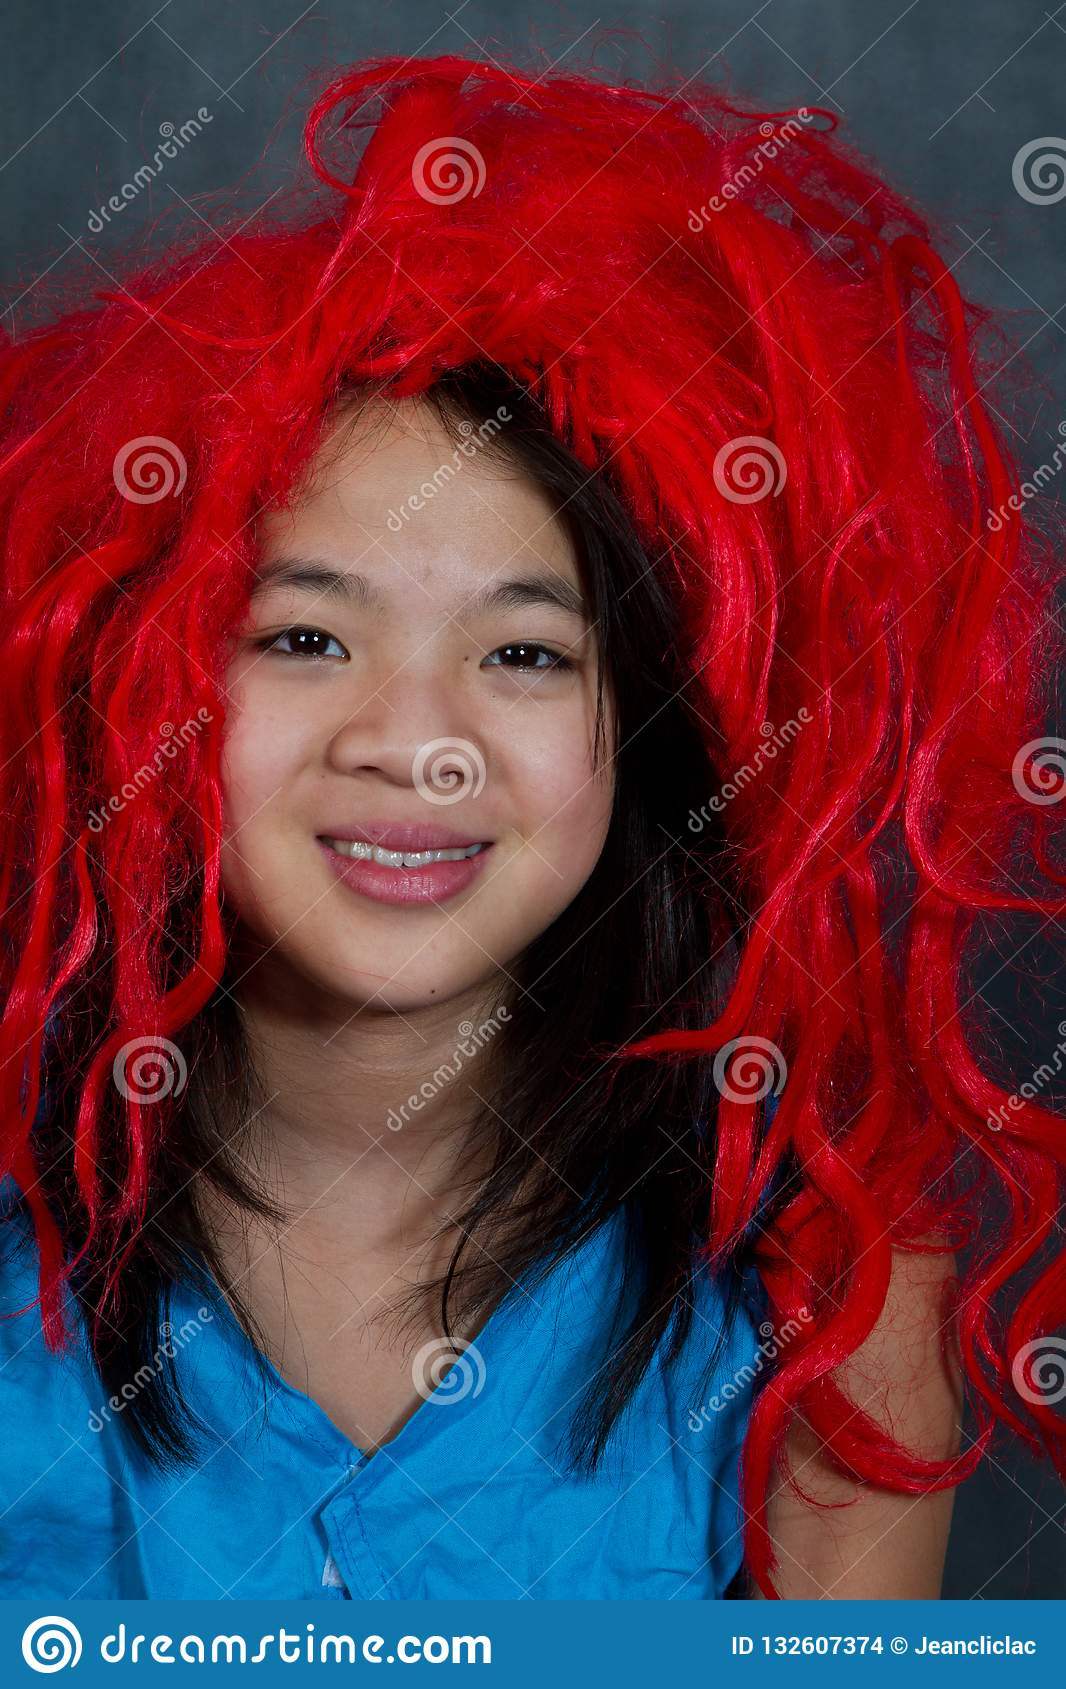 Portrait Of A Young Cute Girl With False Red Hair Looking At Th